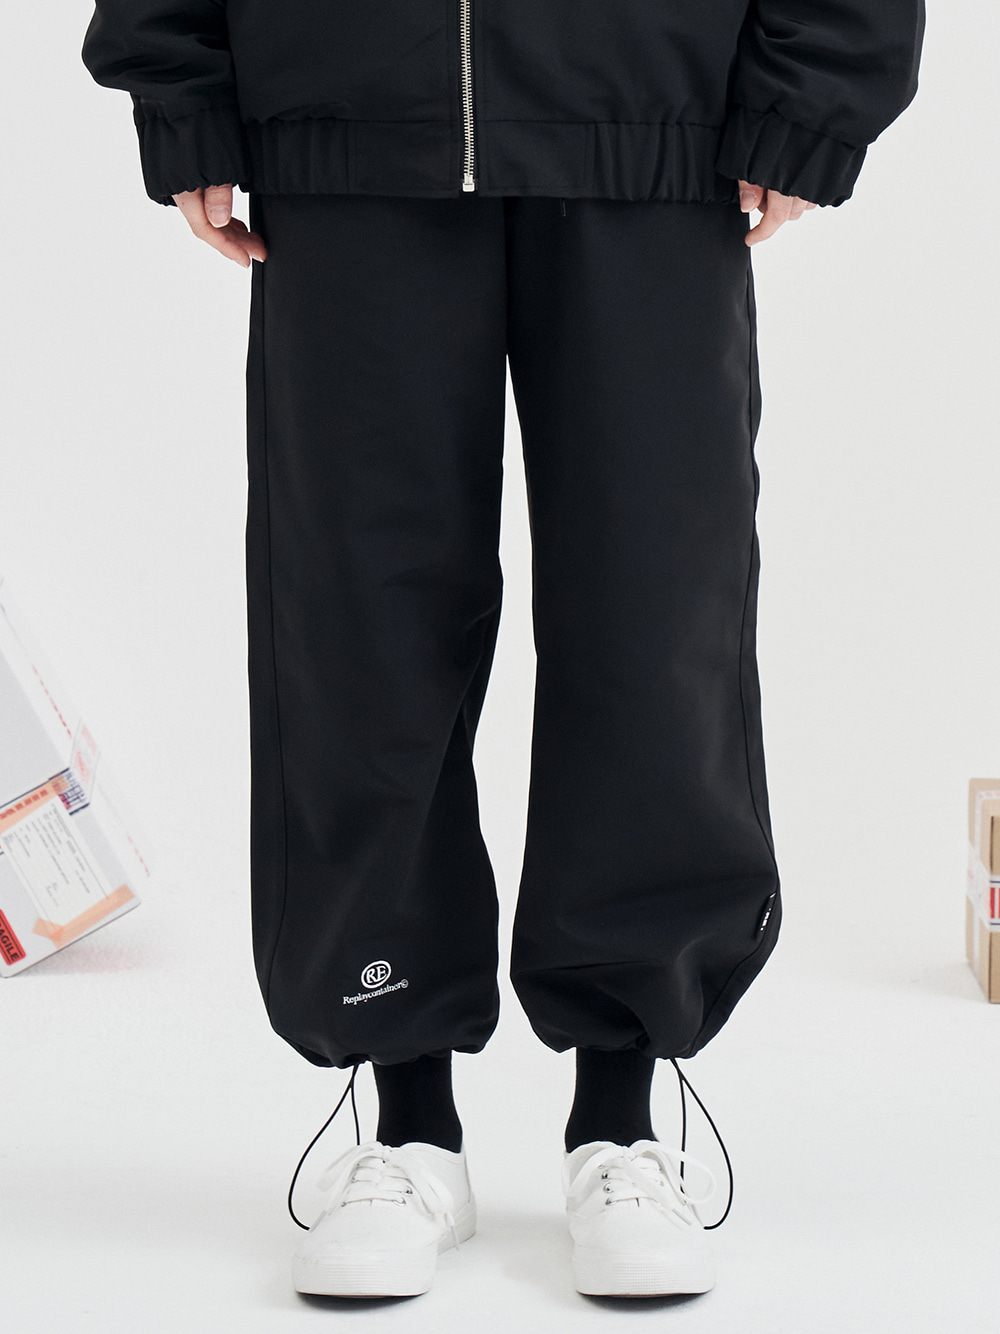 RE capsule logo track string pants (black) [9/28 delivery]